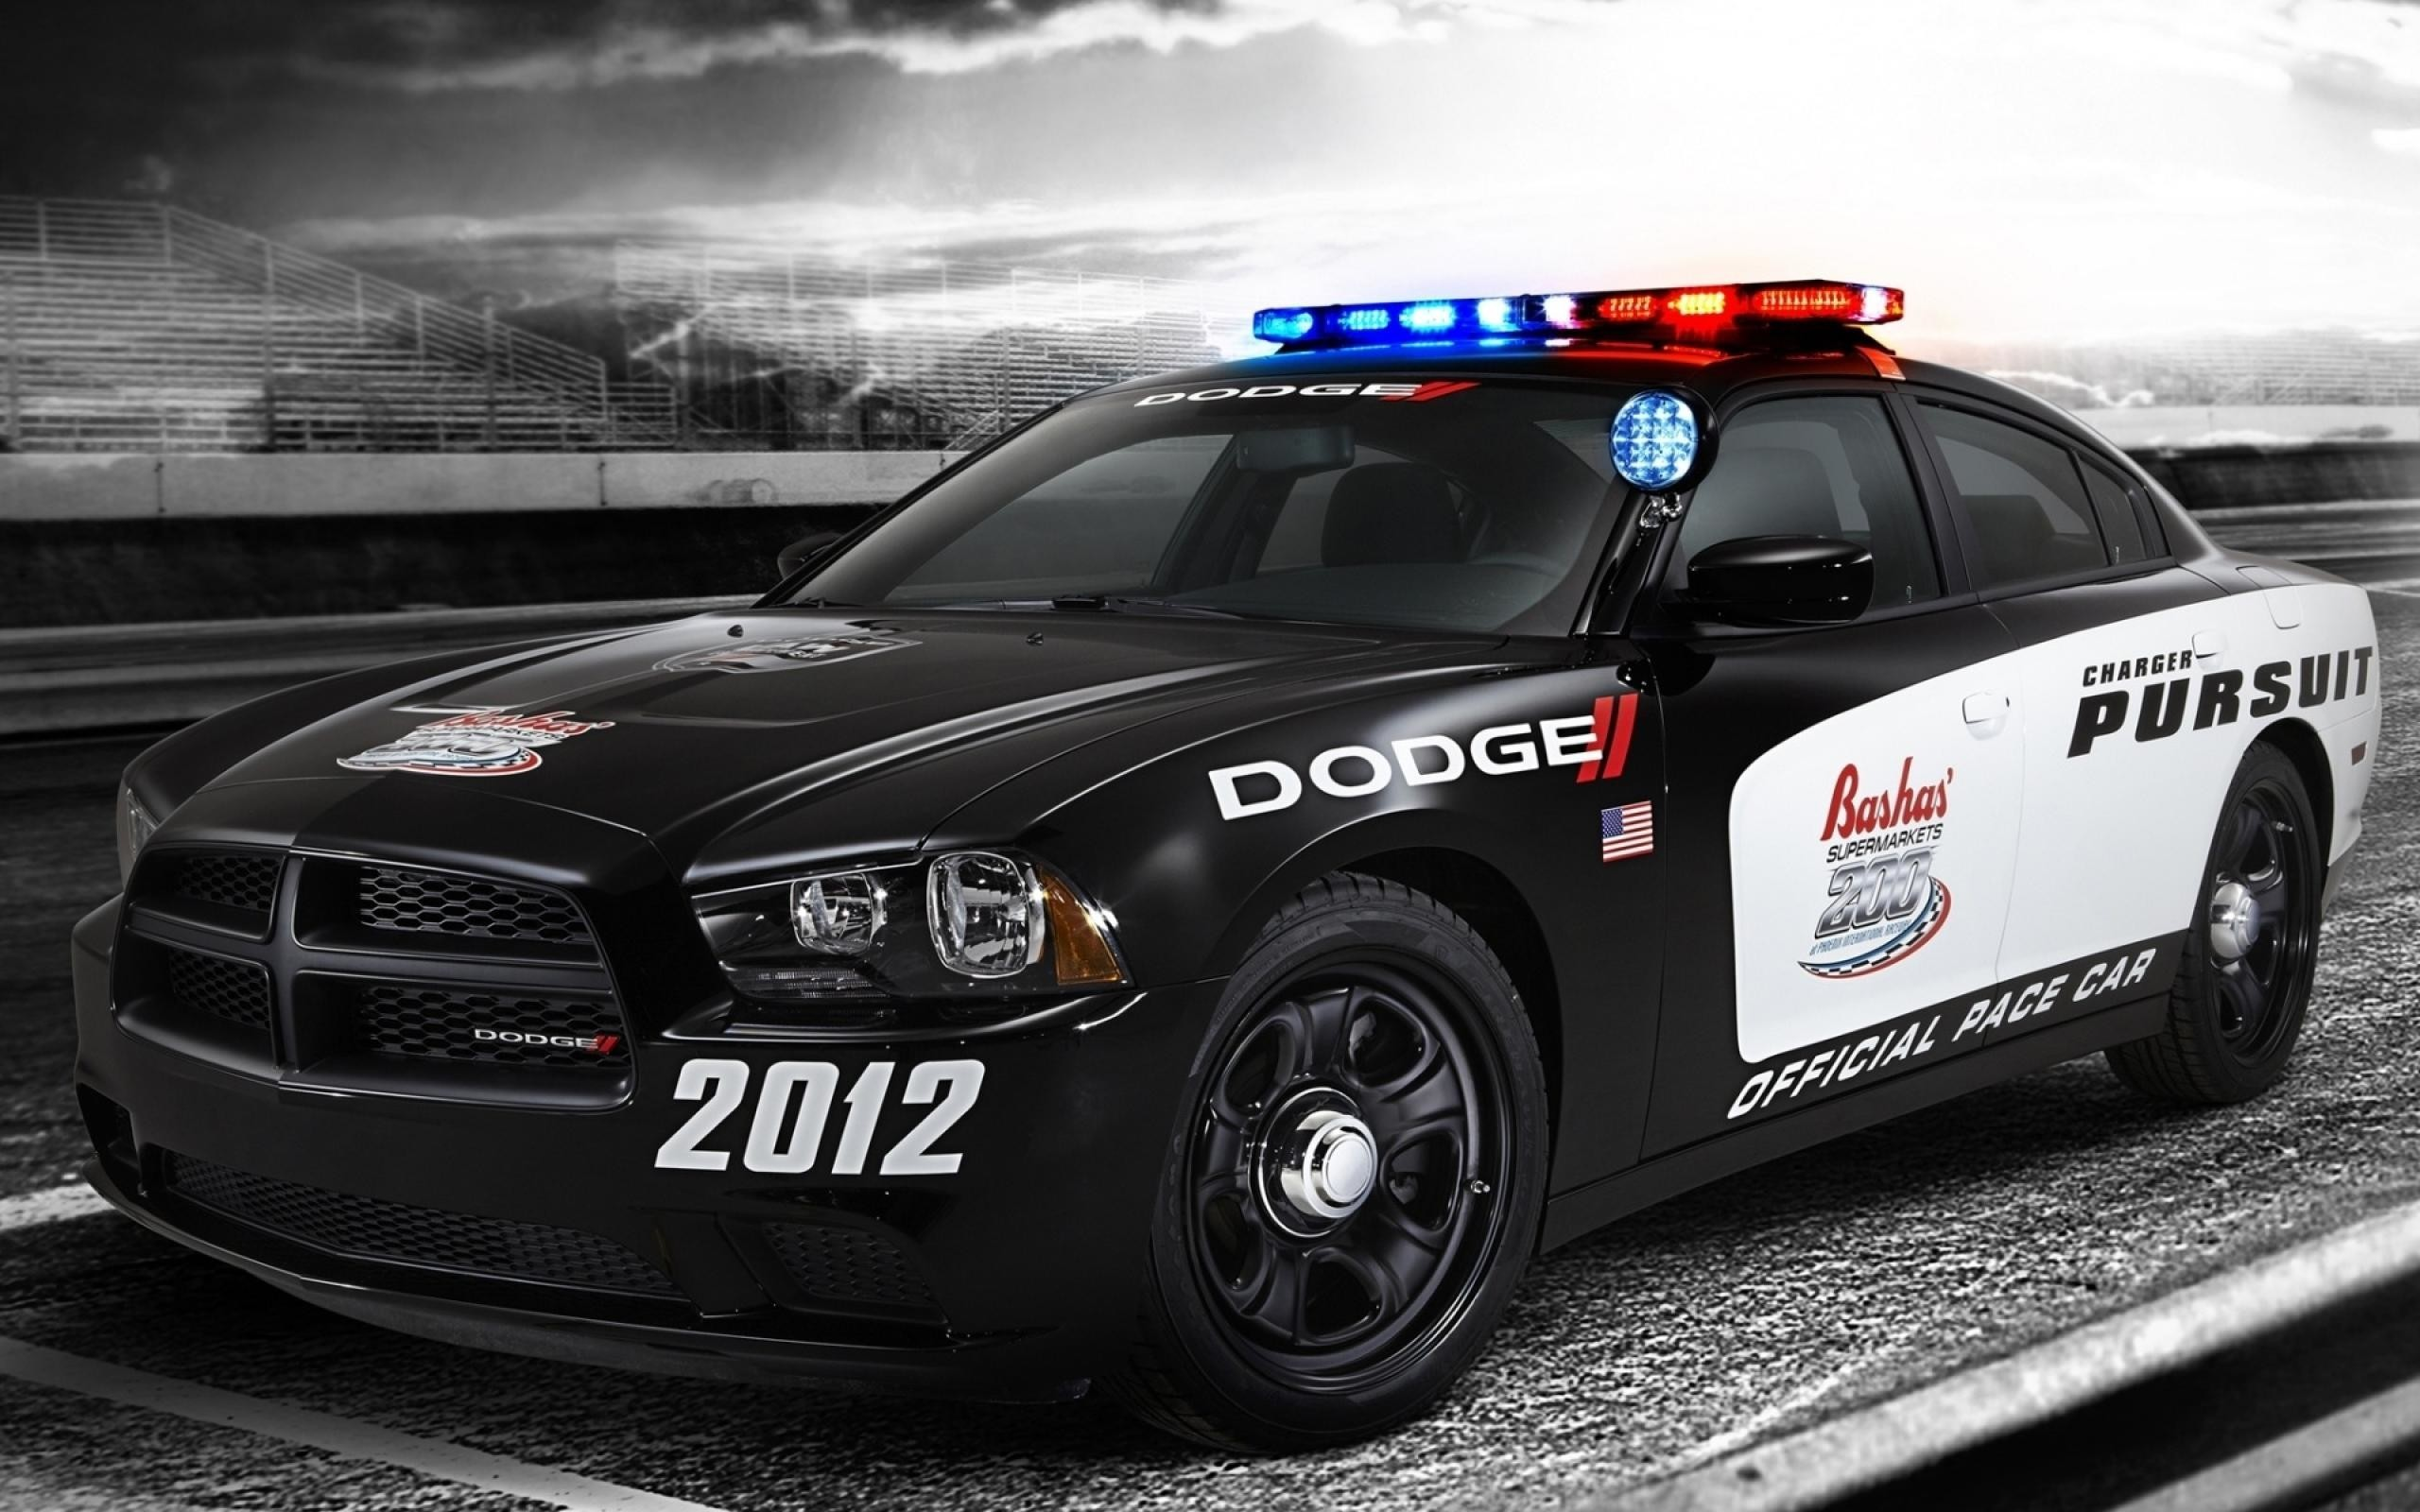 Cool police cars wallpaper 76 images